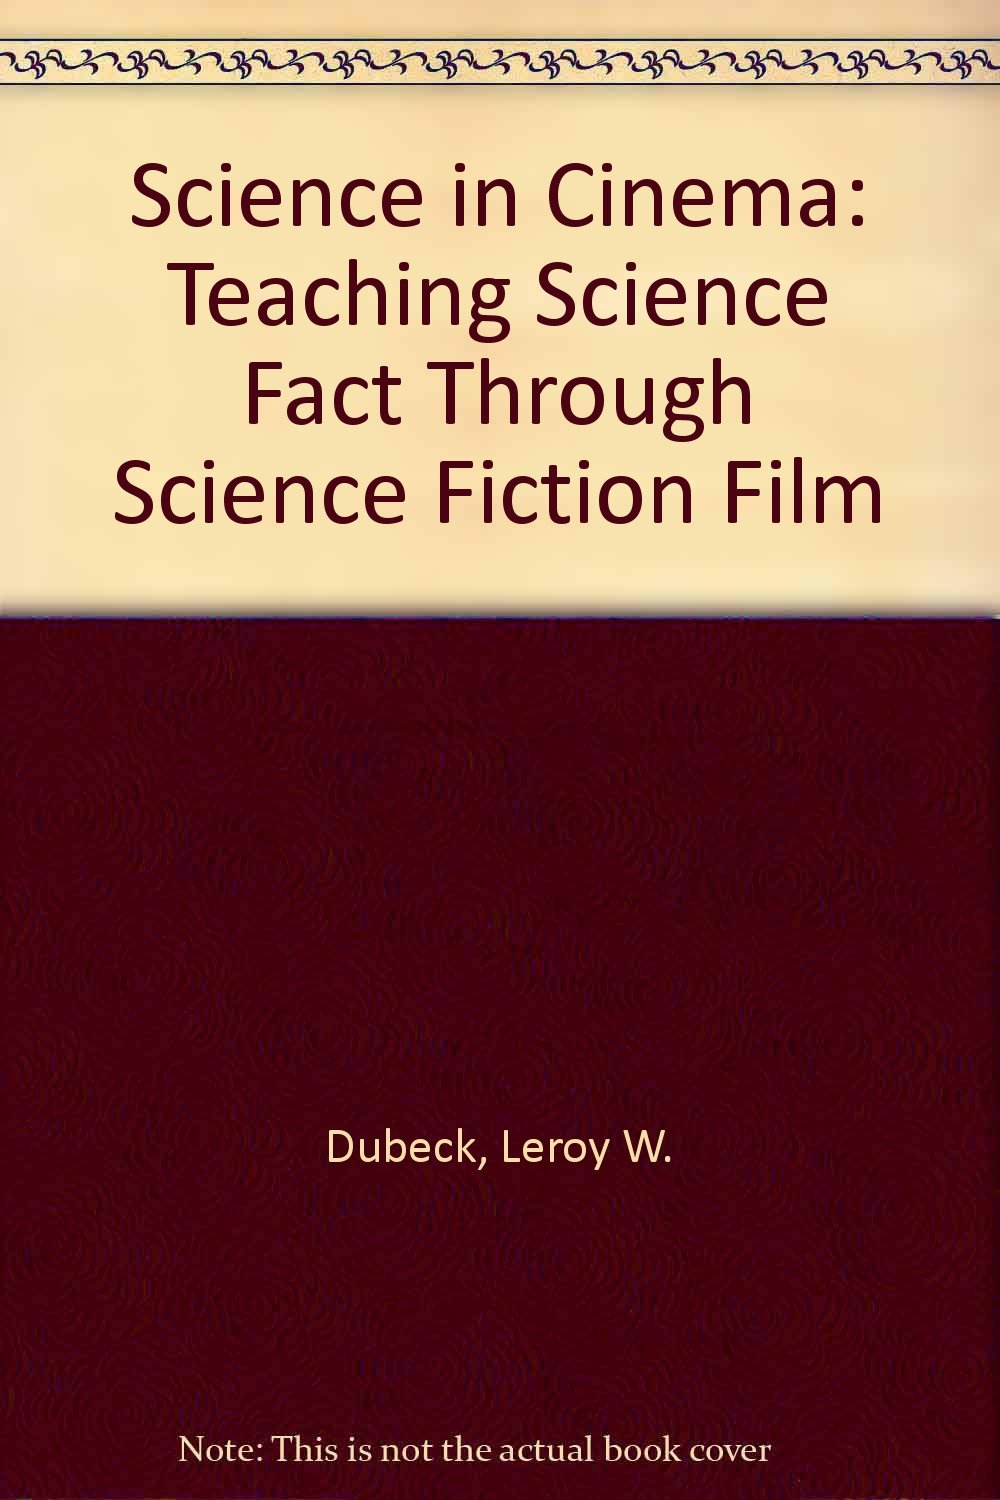 Science in Cinema: Teaching Science Fact Through Science Fiction Film